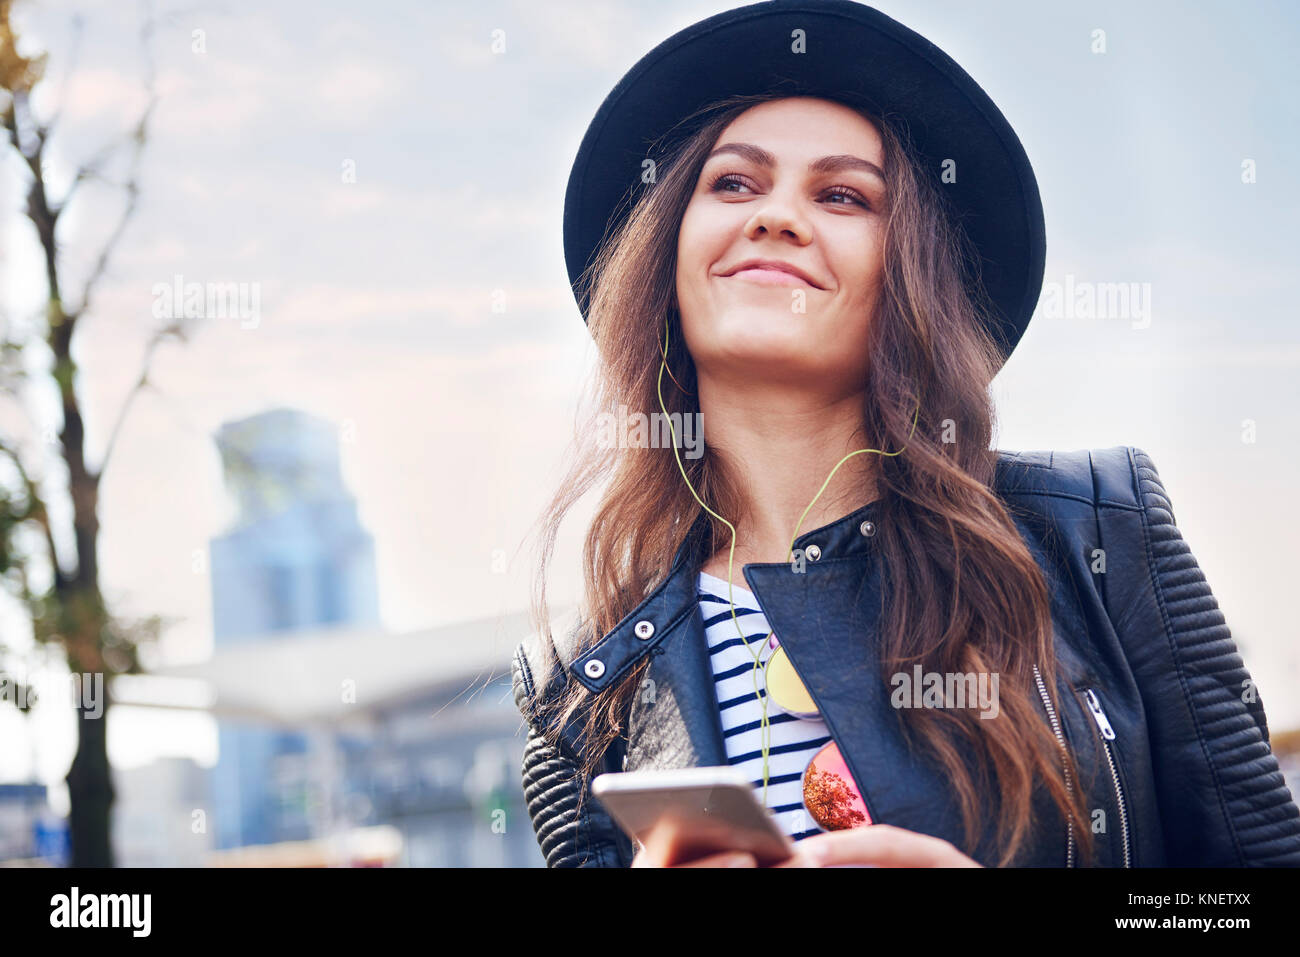 Portrait of young woman in trilby hat in city - Stock Image